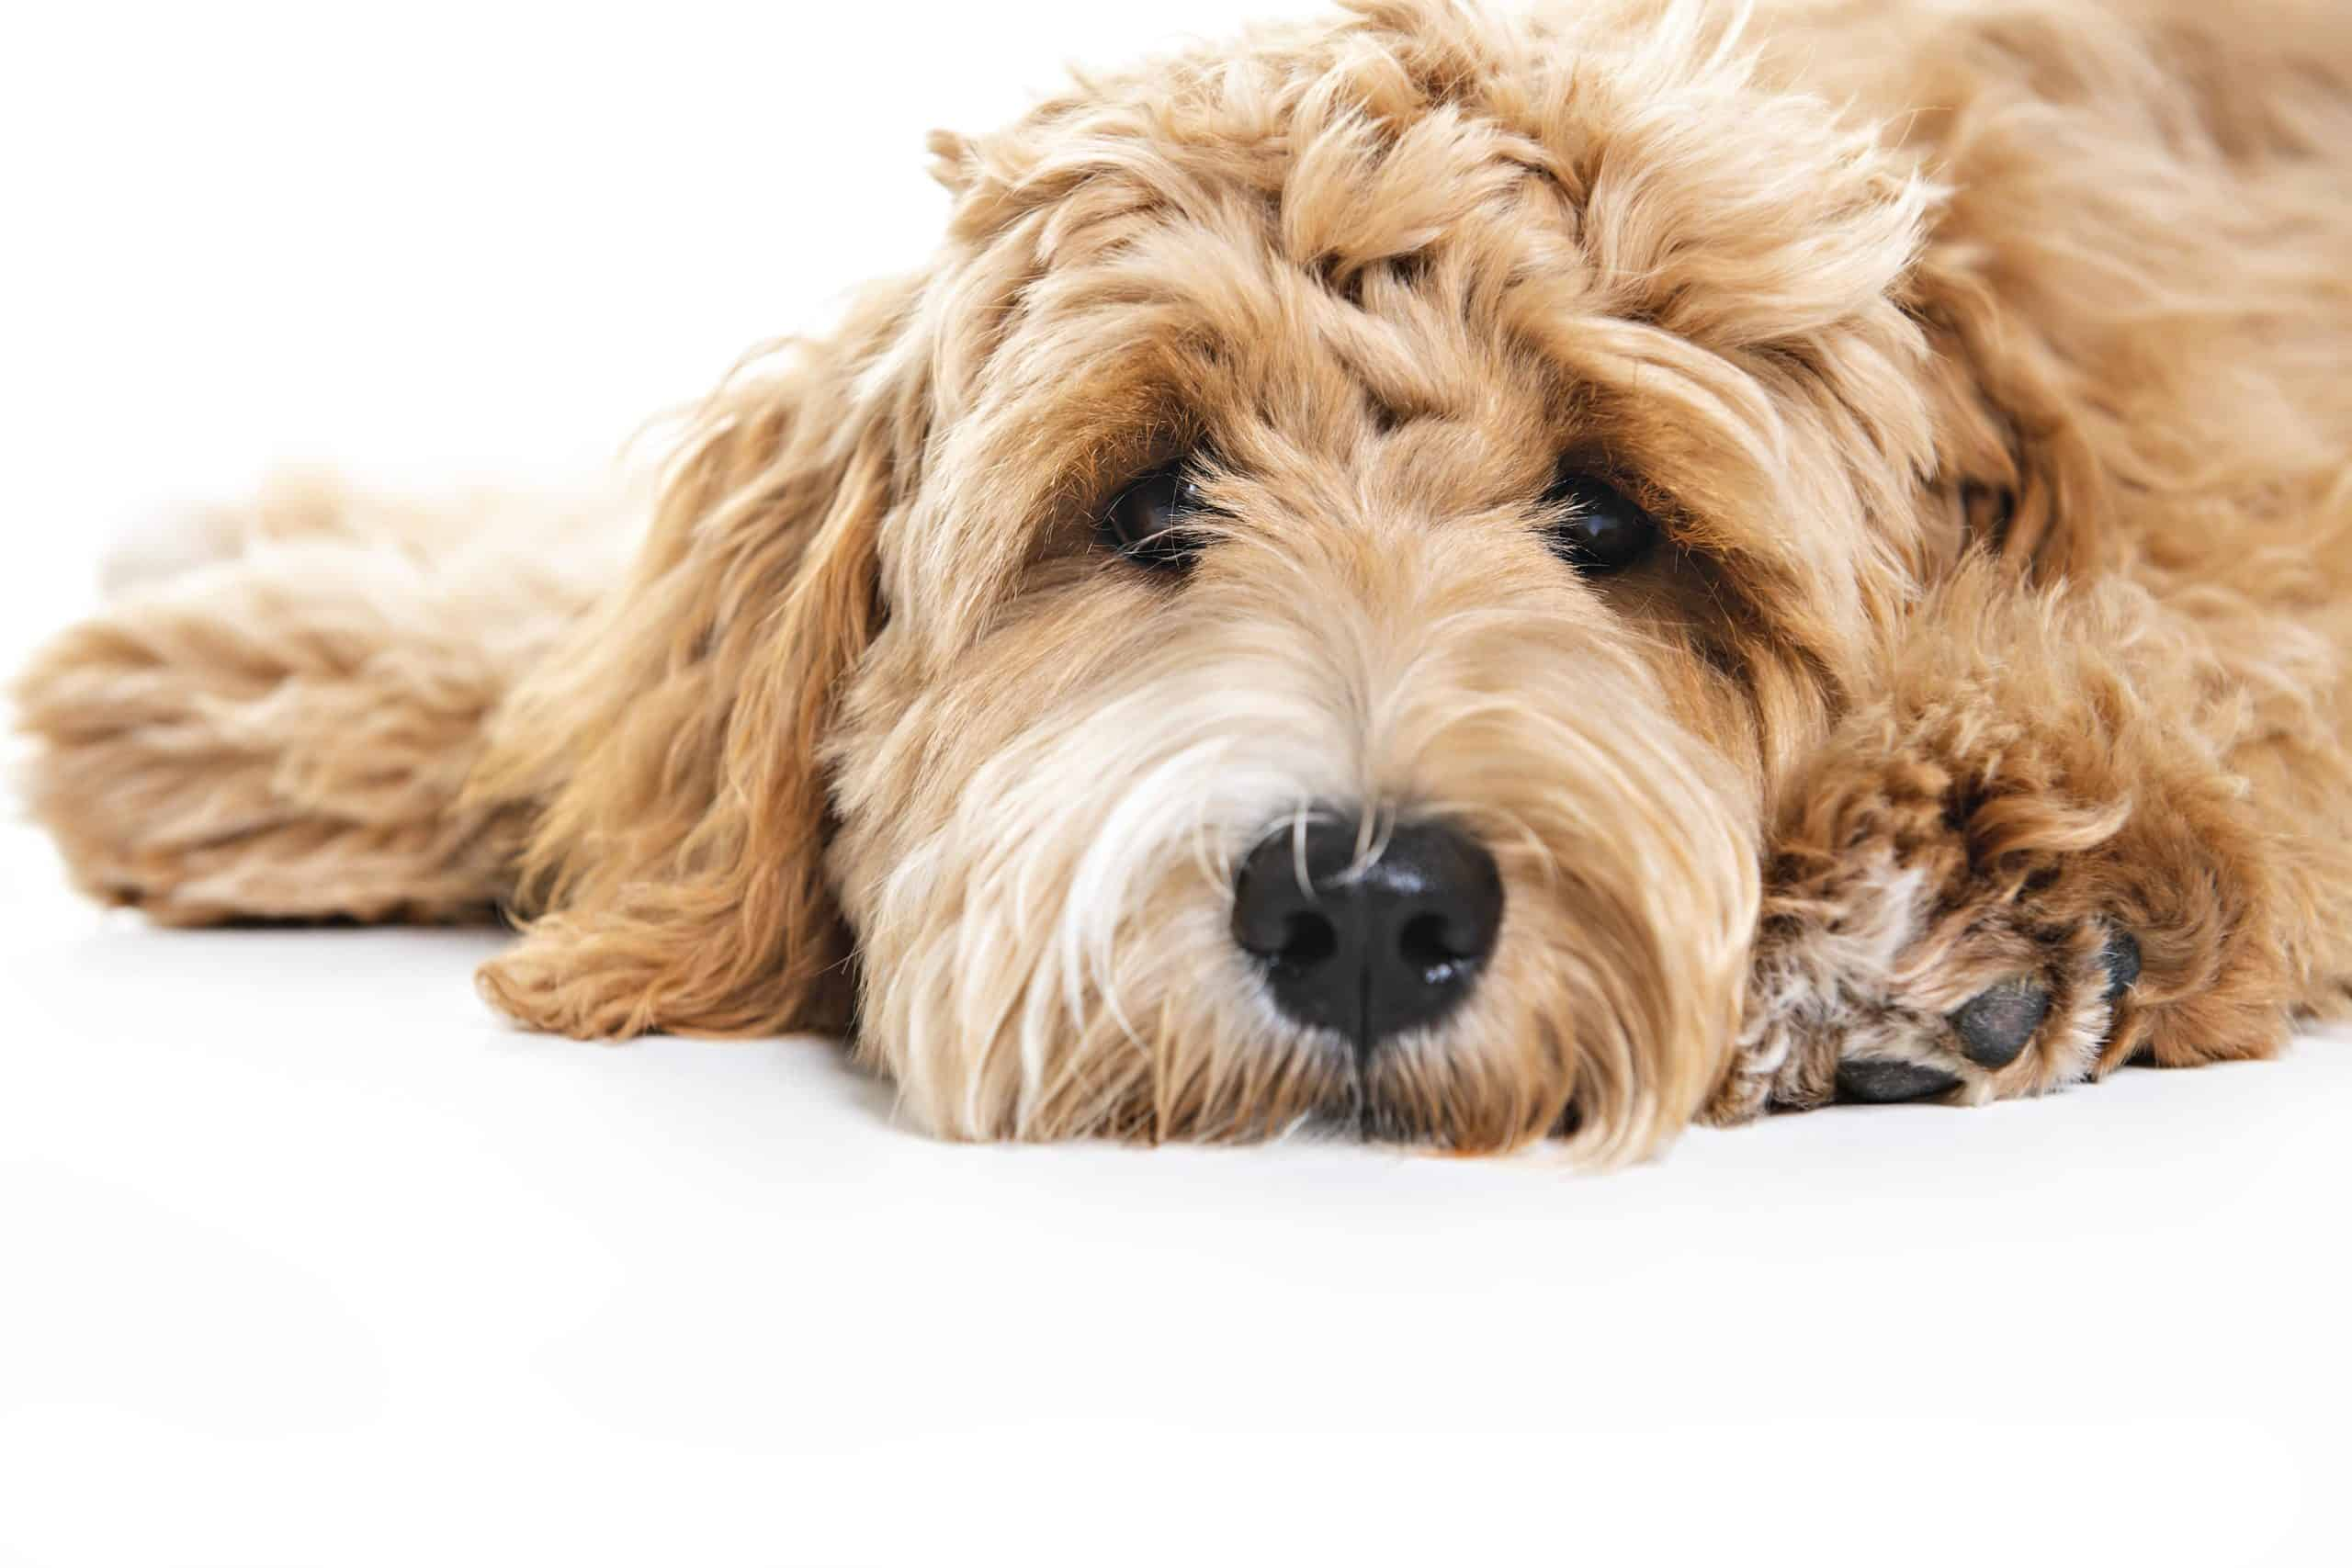 Goldendoodle puppy on white background. Before you welcome a new member of the family, take time to consider whether you are ready for a puppy.